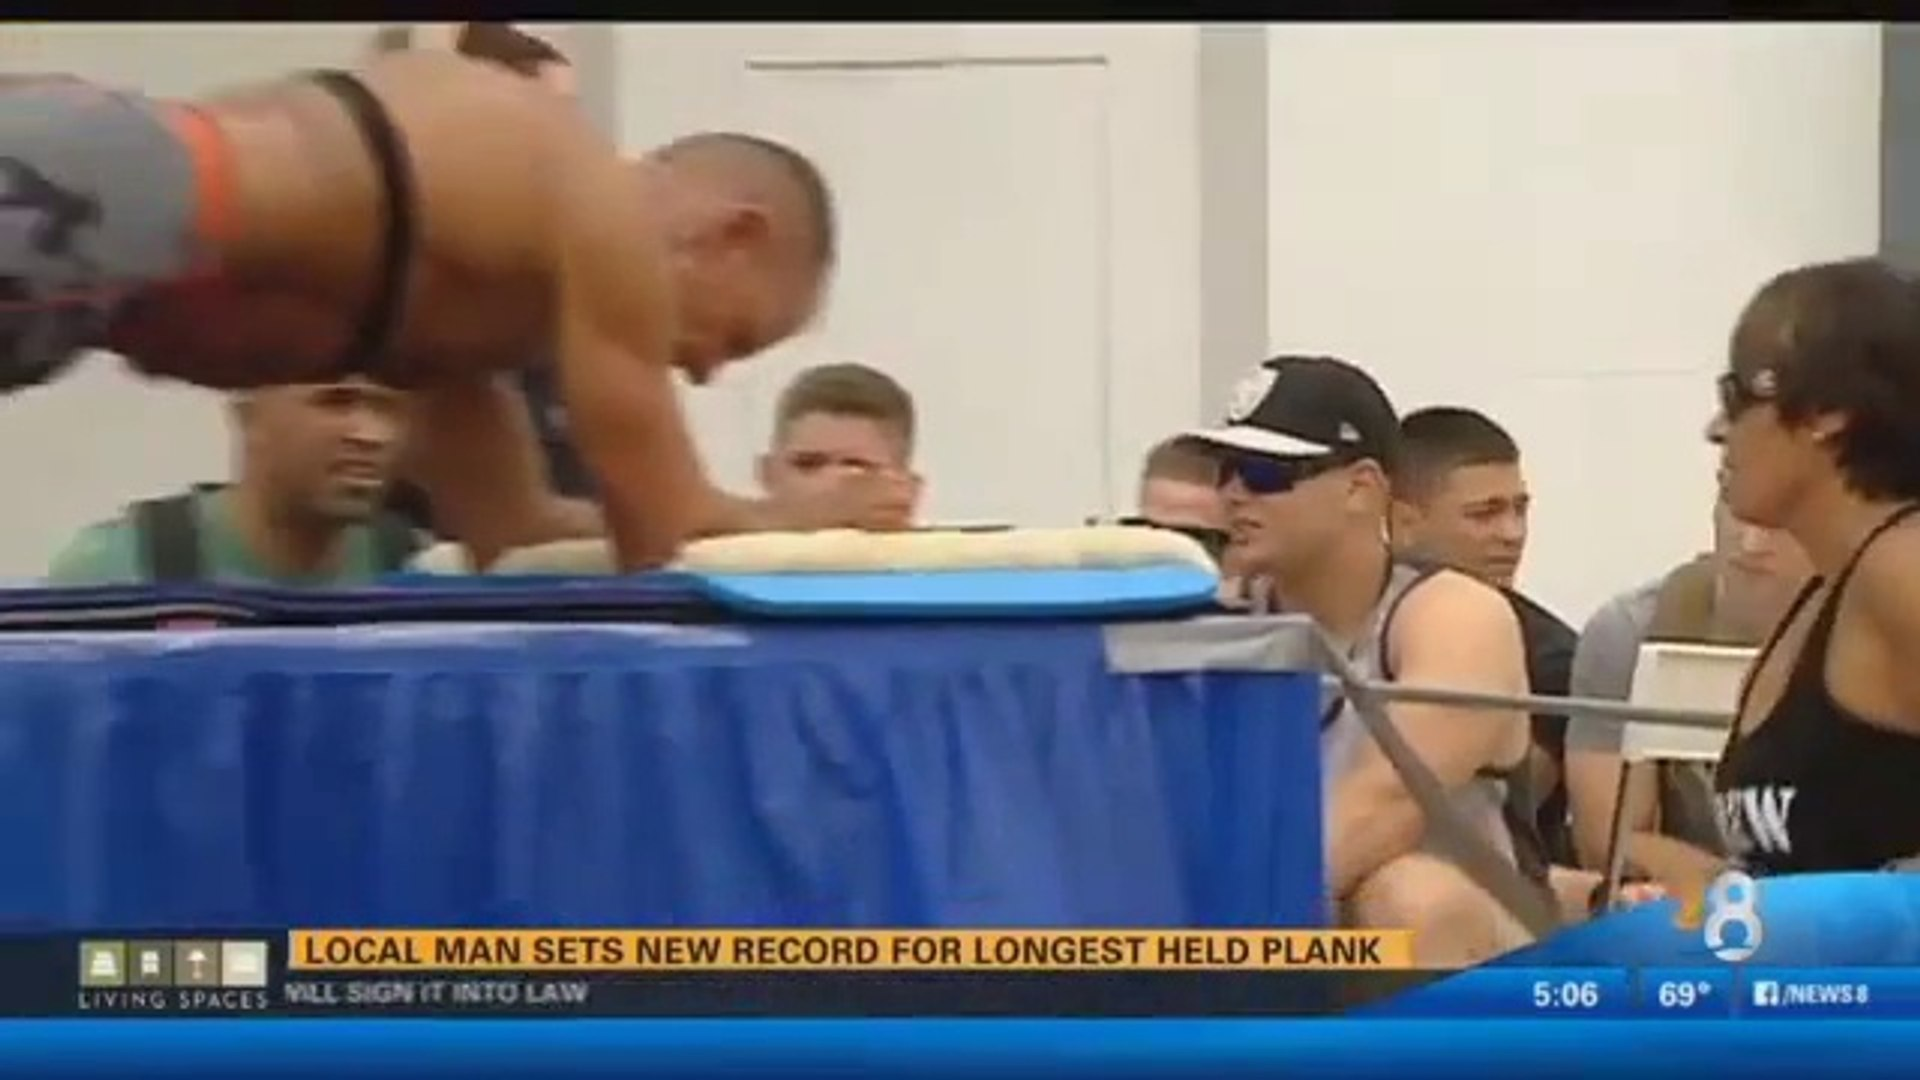 This dude just broke a world record by holding a plank for over 5 excruciating hours